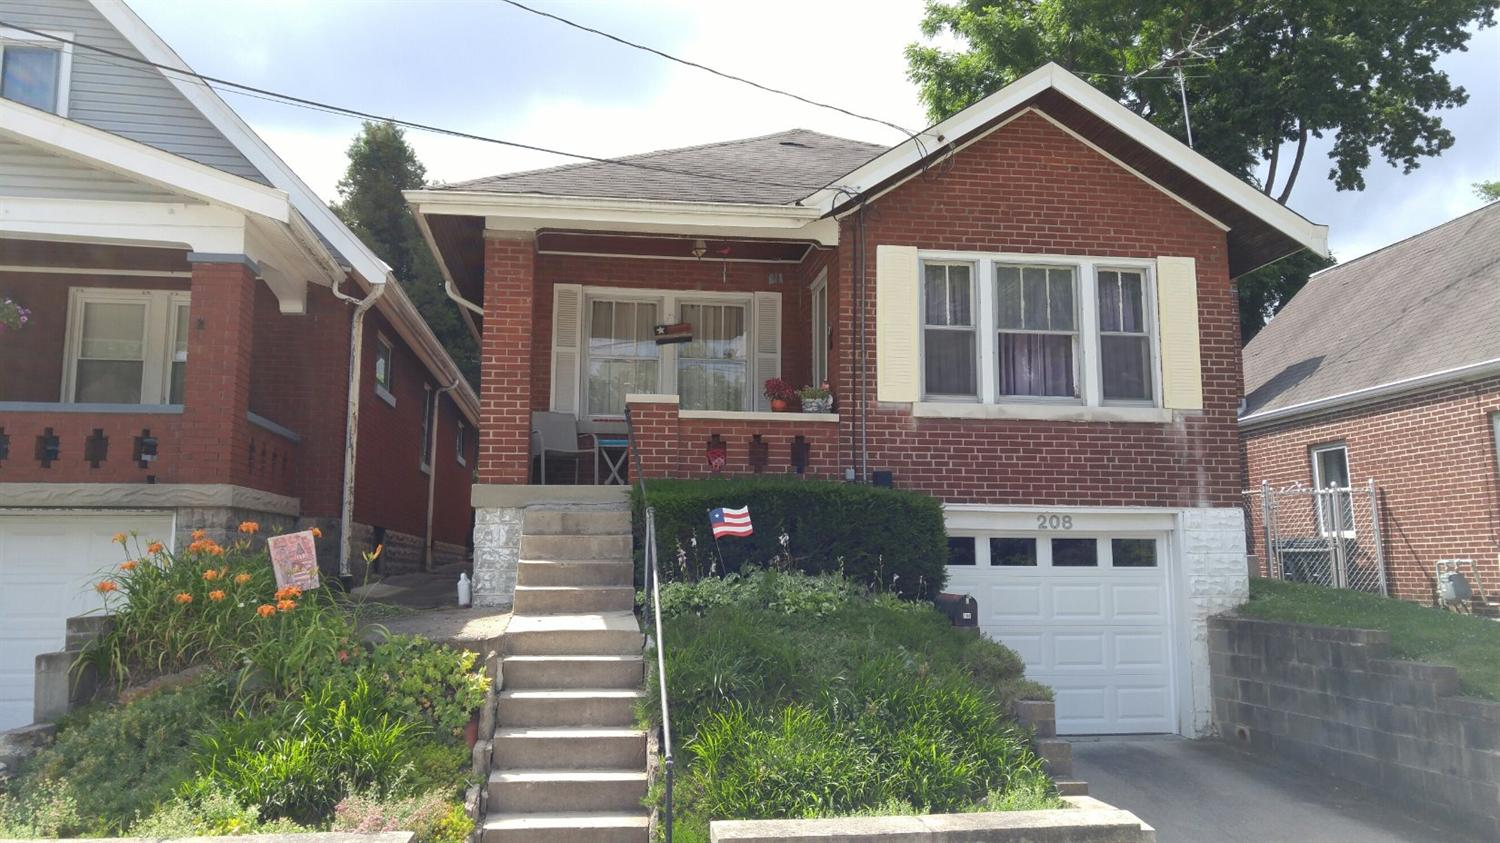 Photo 1 for 208 Roosevelt Ave Bellevue, KY 41073